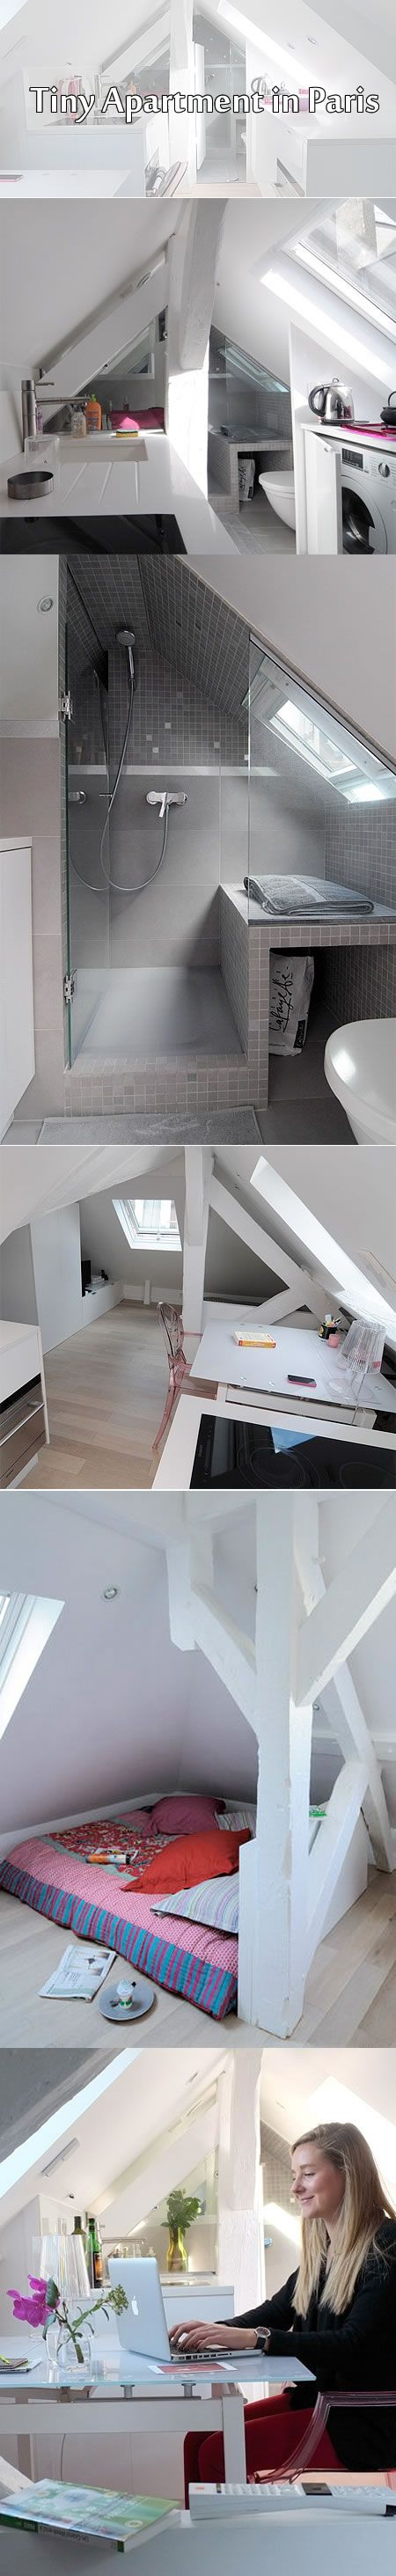 Tiny studio apartment in Paris. Compact living. White. Attic apartment. Scandinavian style.